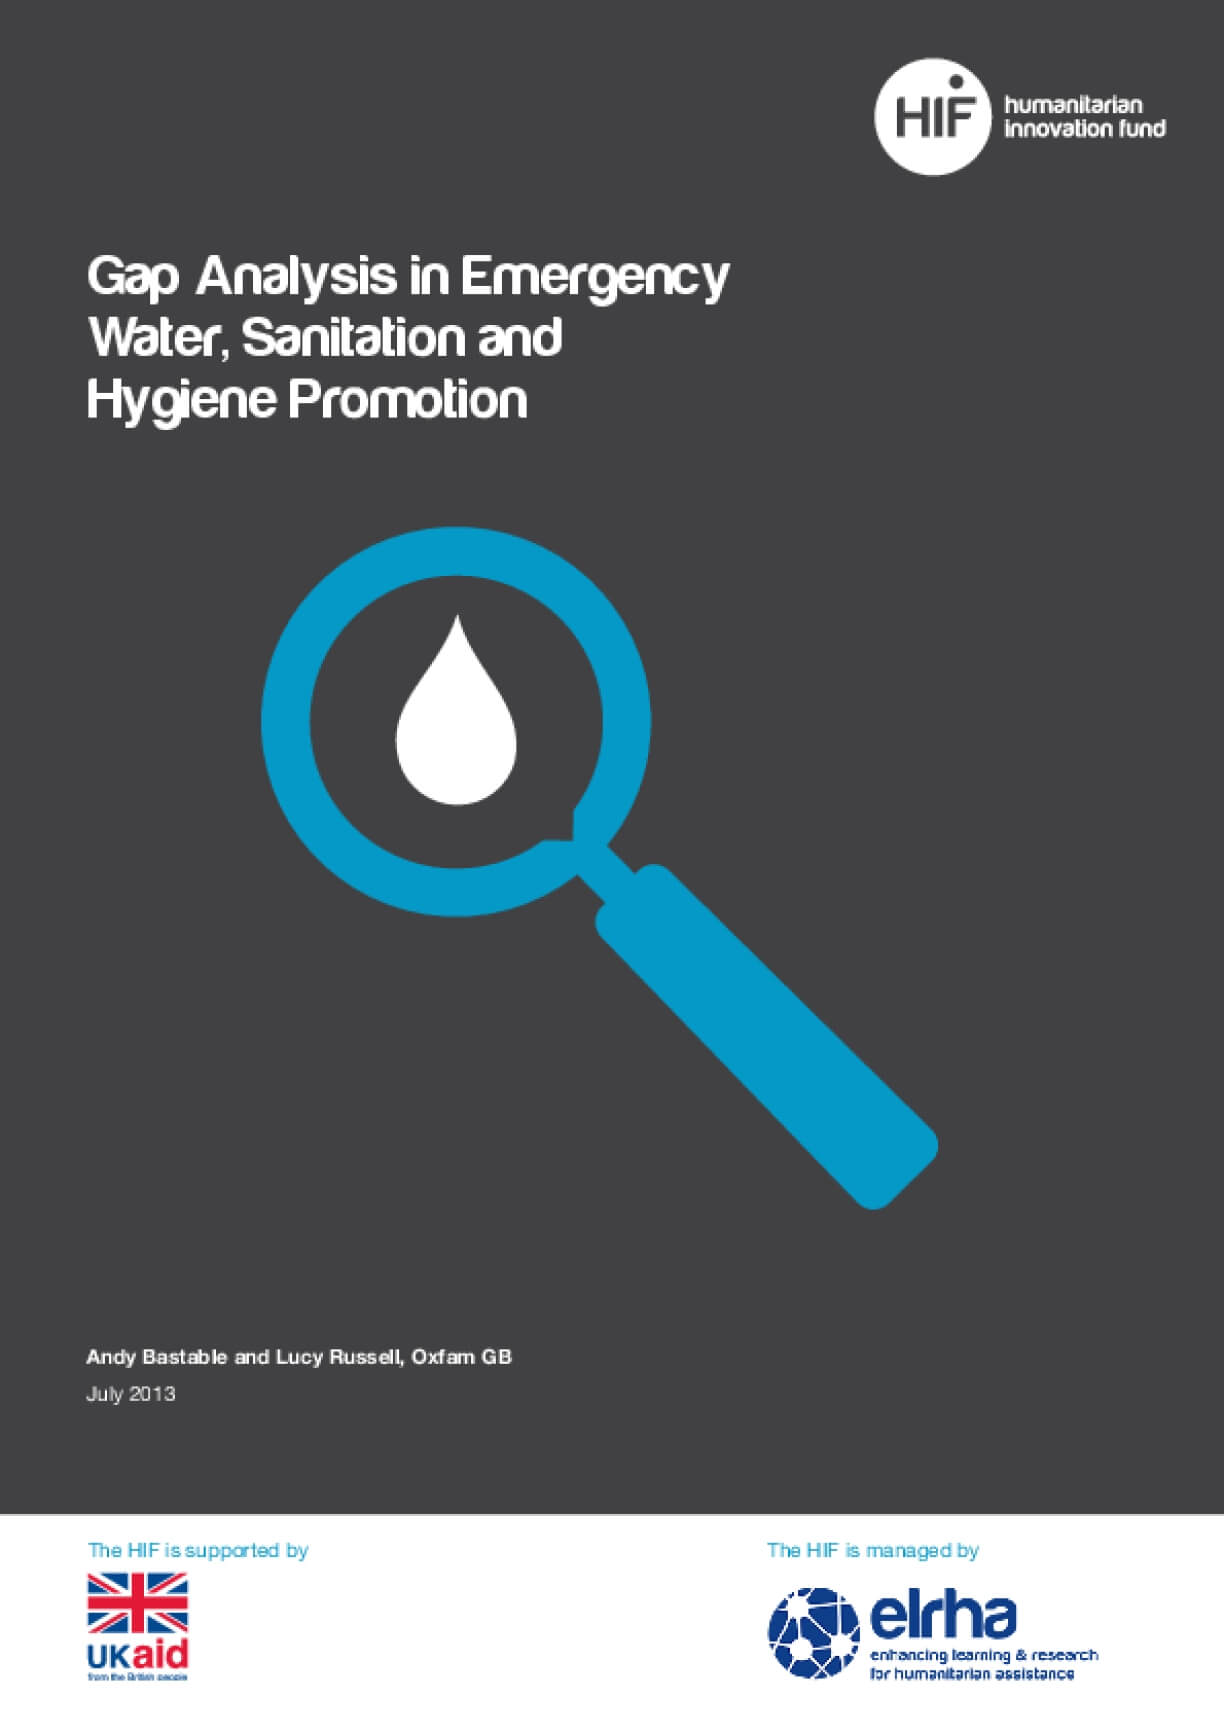 Gap Analysis in Emergency Water, Sanitation and Hygiene Promotion